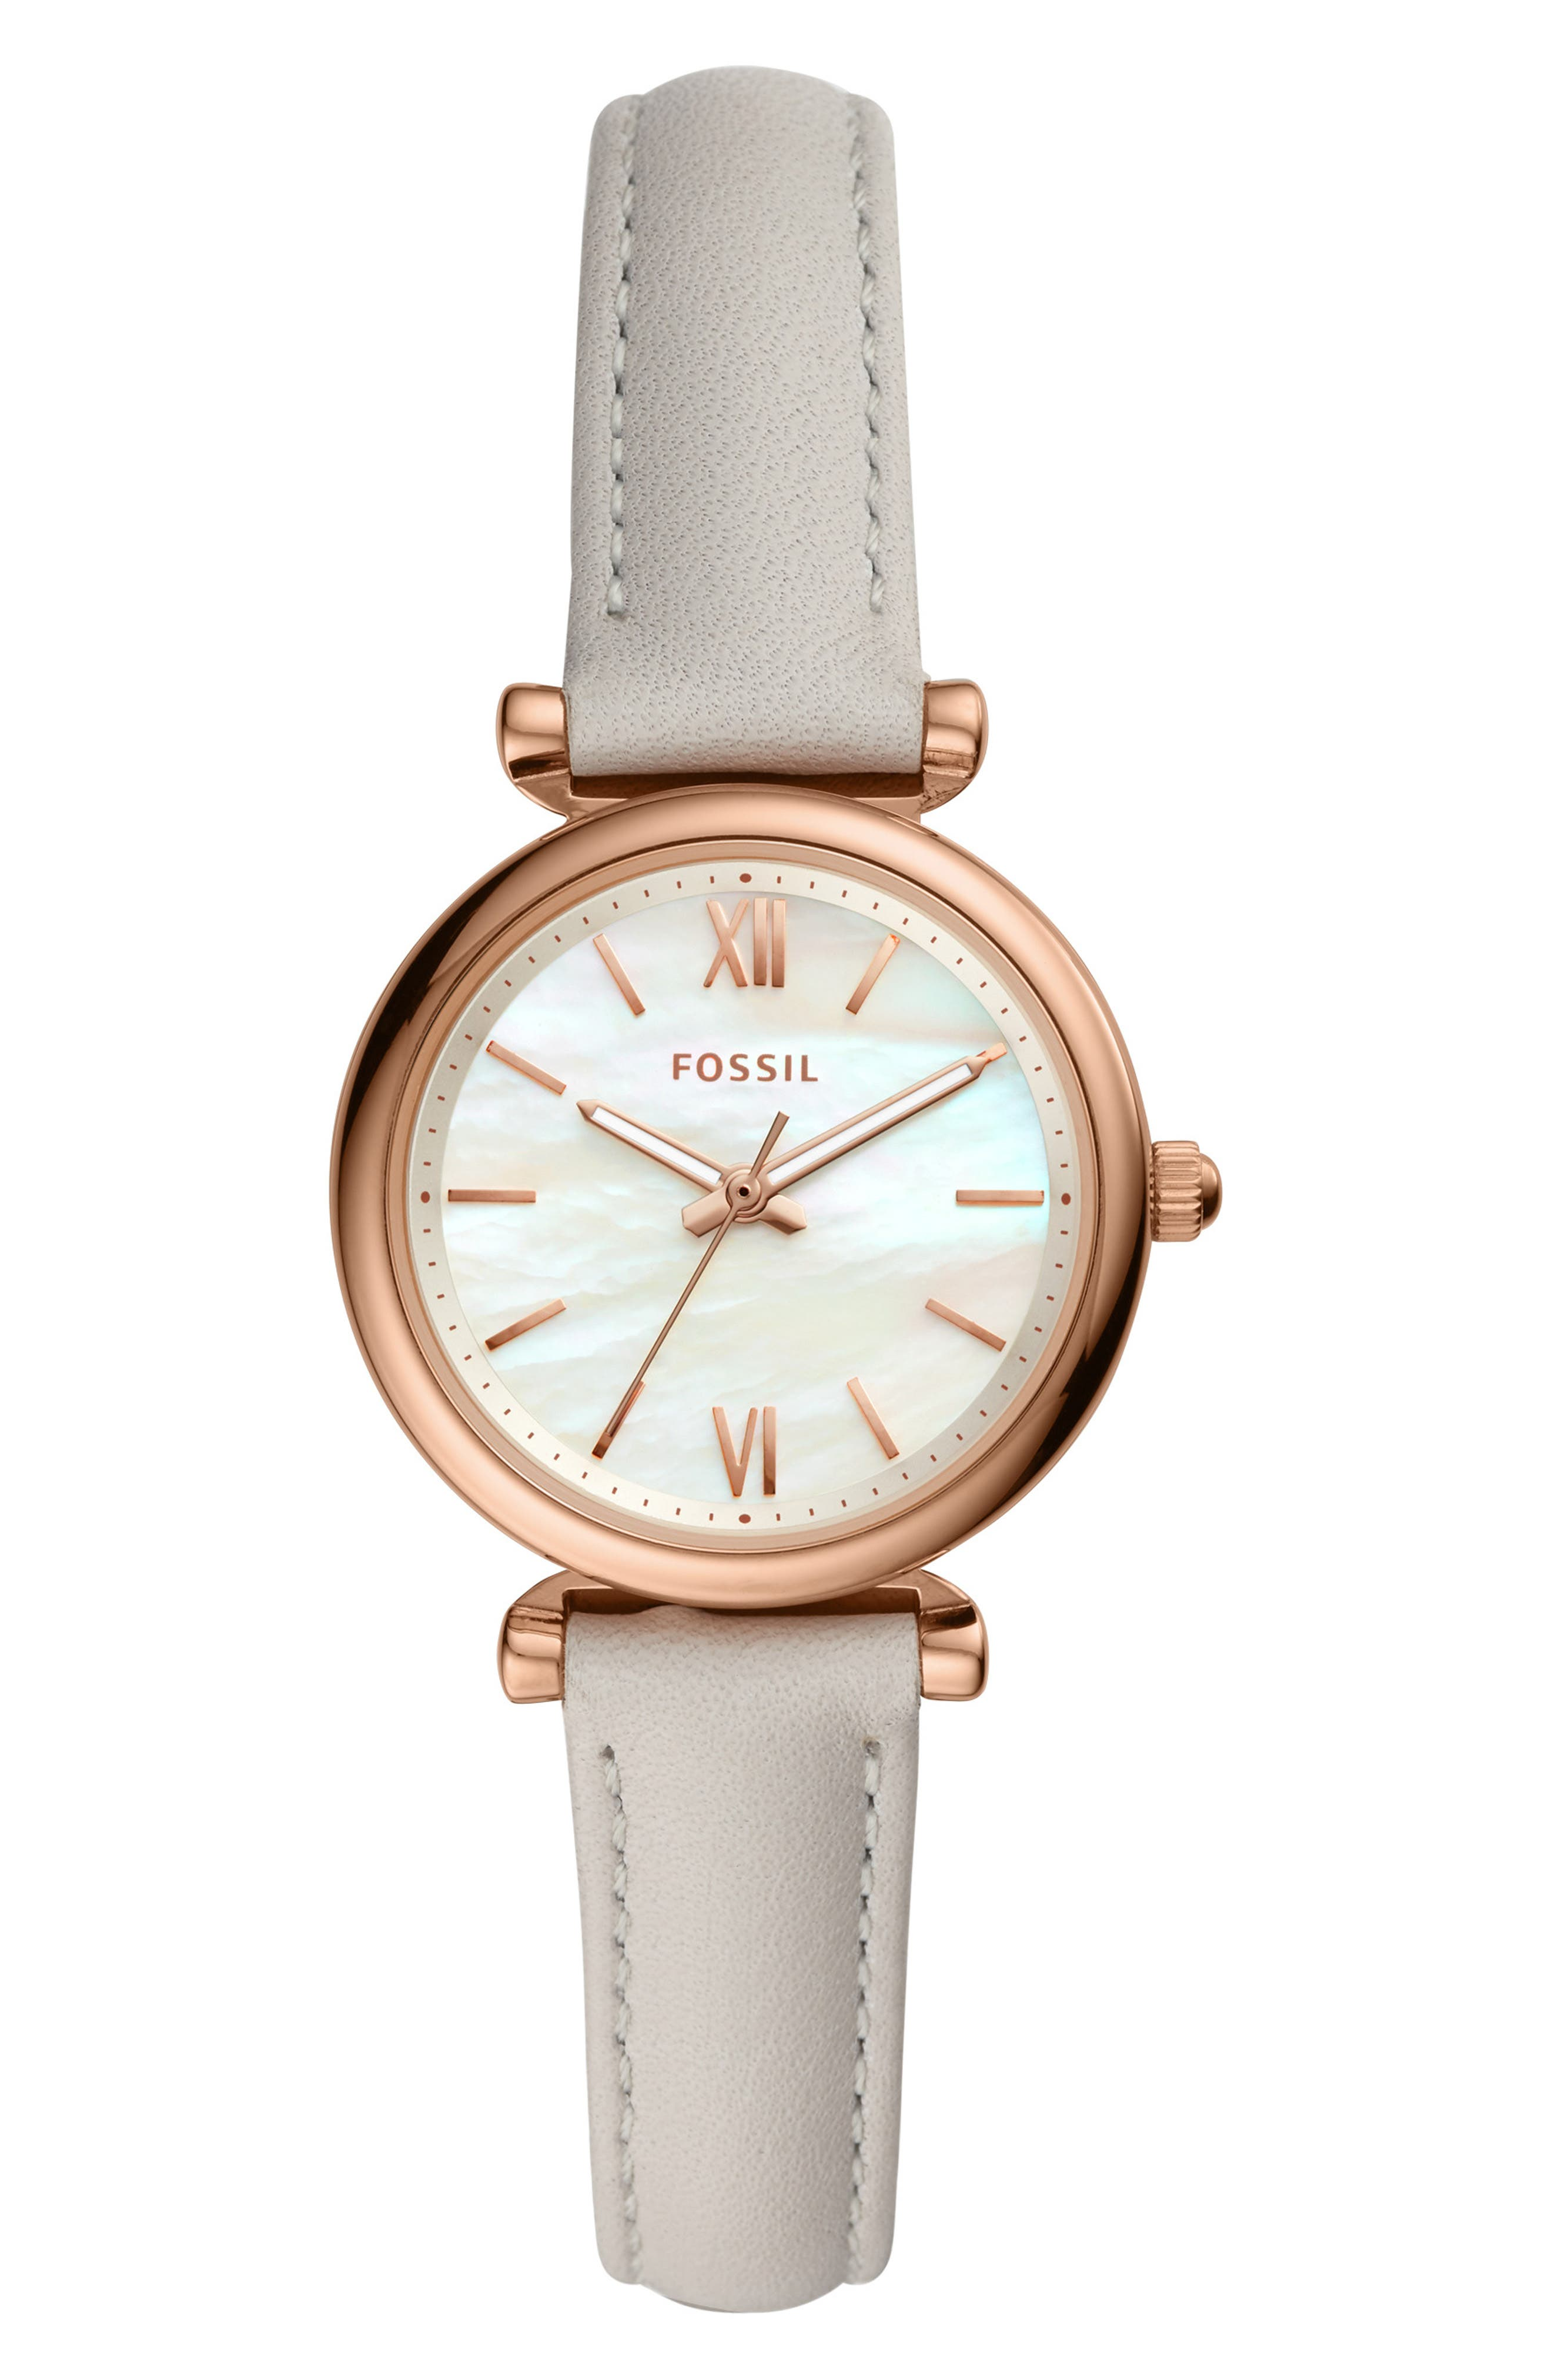 FOSSIL, Mini Carlie Star Leather Strap Watch, 28mm, Main thumbnail 1, color, GREY/ WHITE MOP/ ROSE GOLD